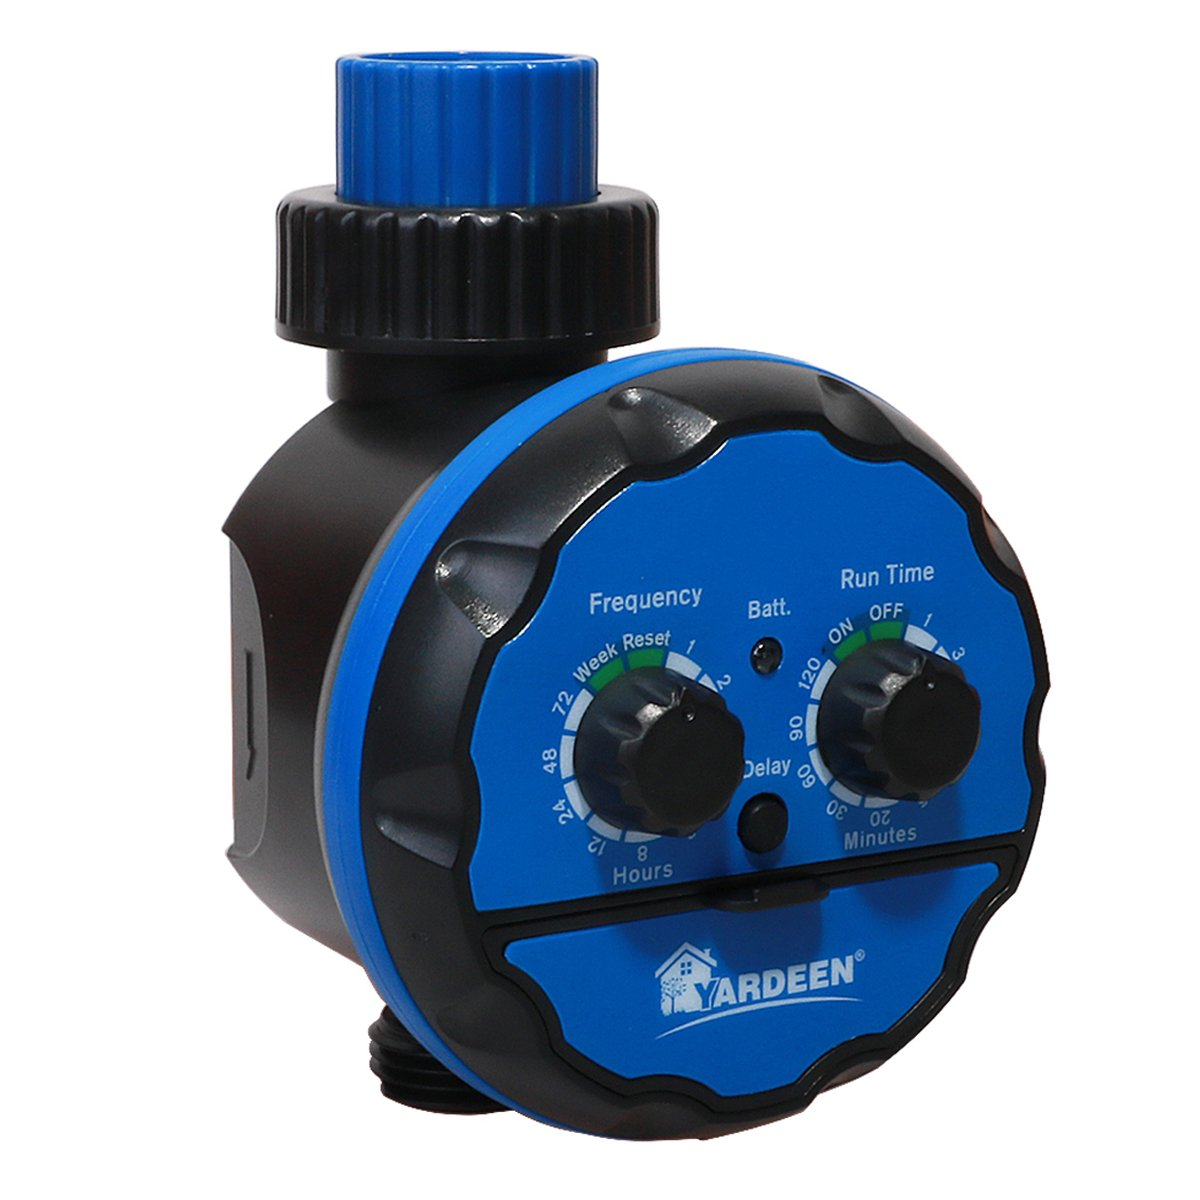 Yardeen Electronic Water Timer Irrigation System Waterproof, Rain Delay Function Color Blue